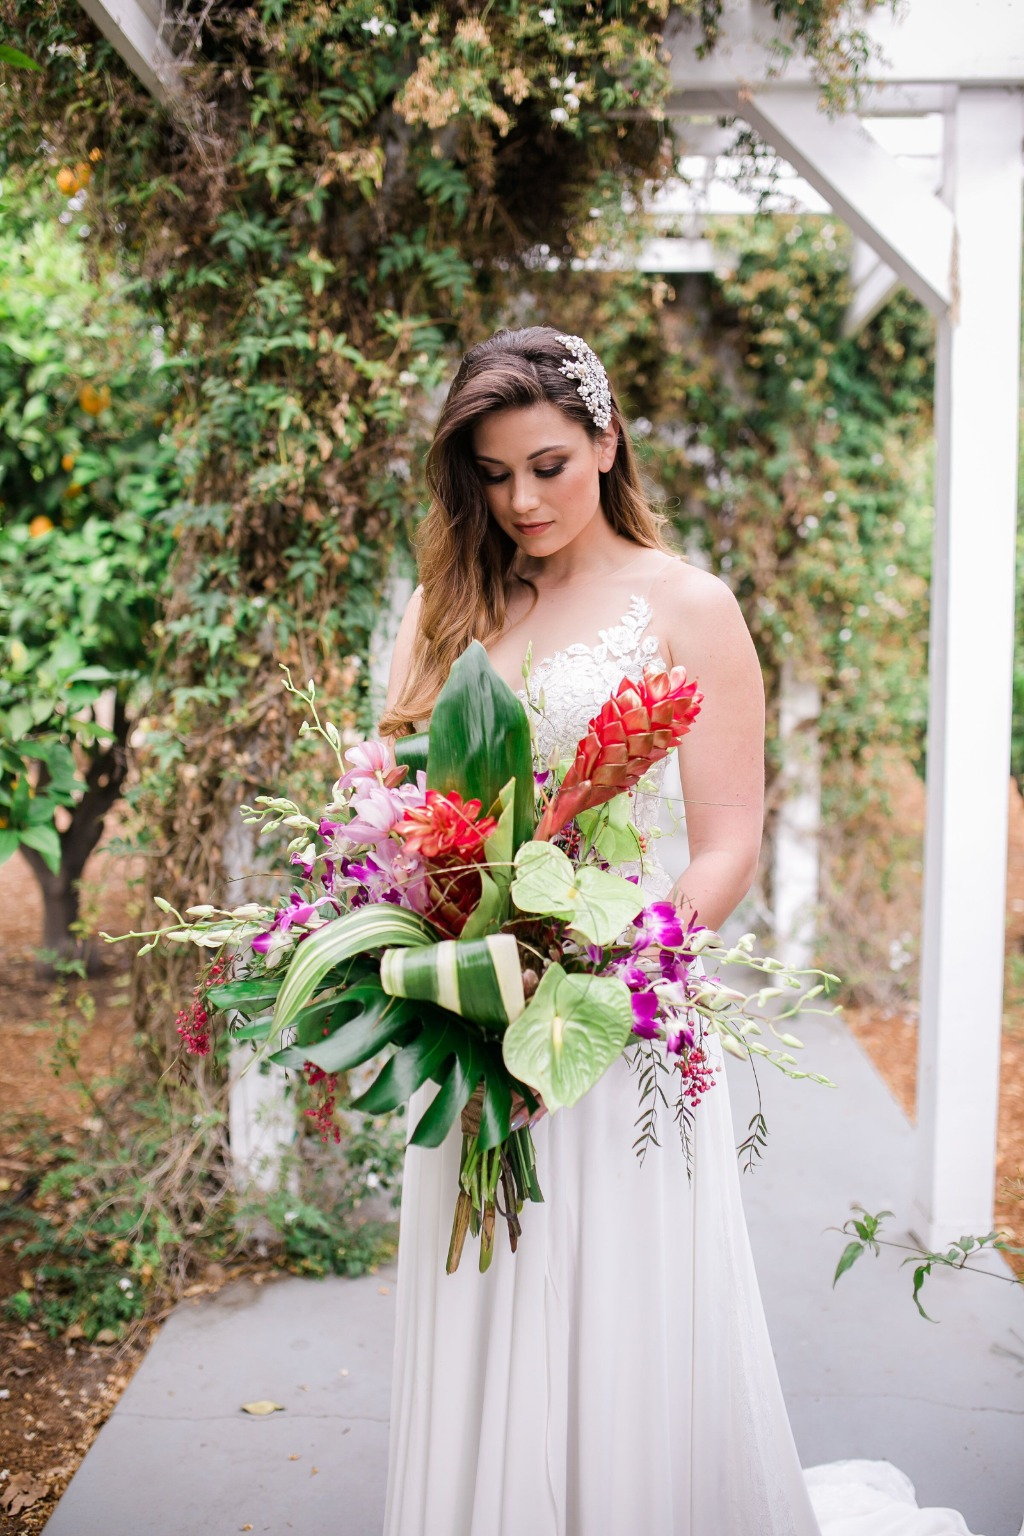 Thinking out of the box, a theme that was fresh and unique was the inspiration for this Havana Nights styled shoot! Setting the mood